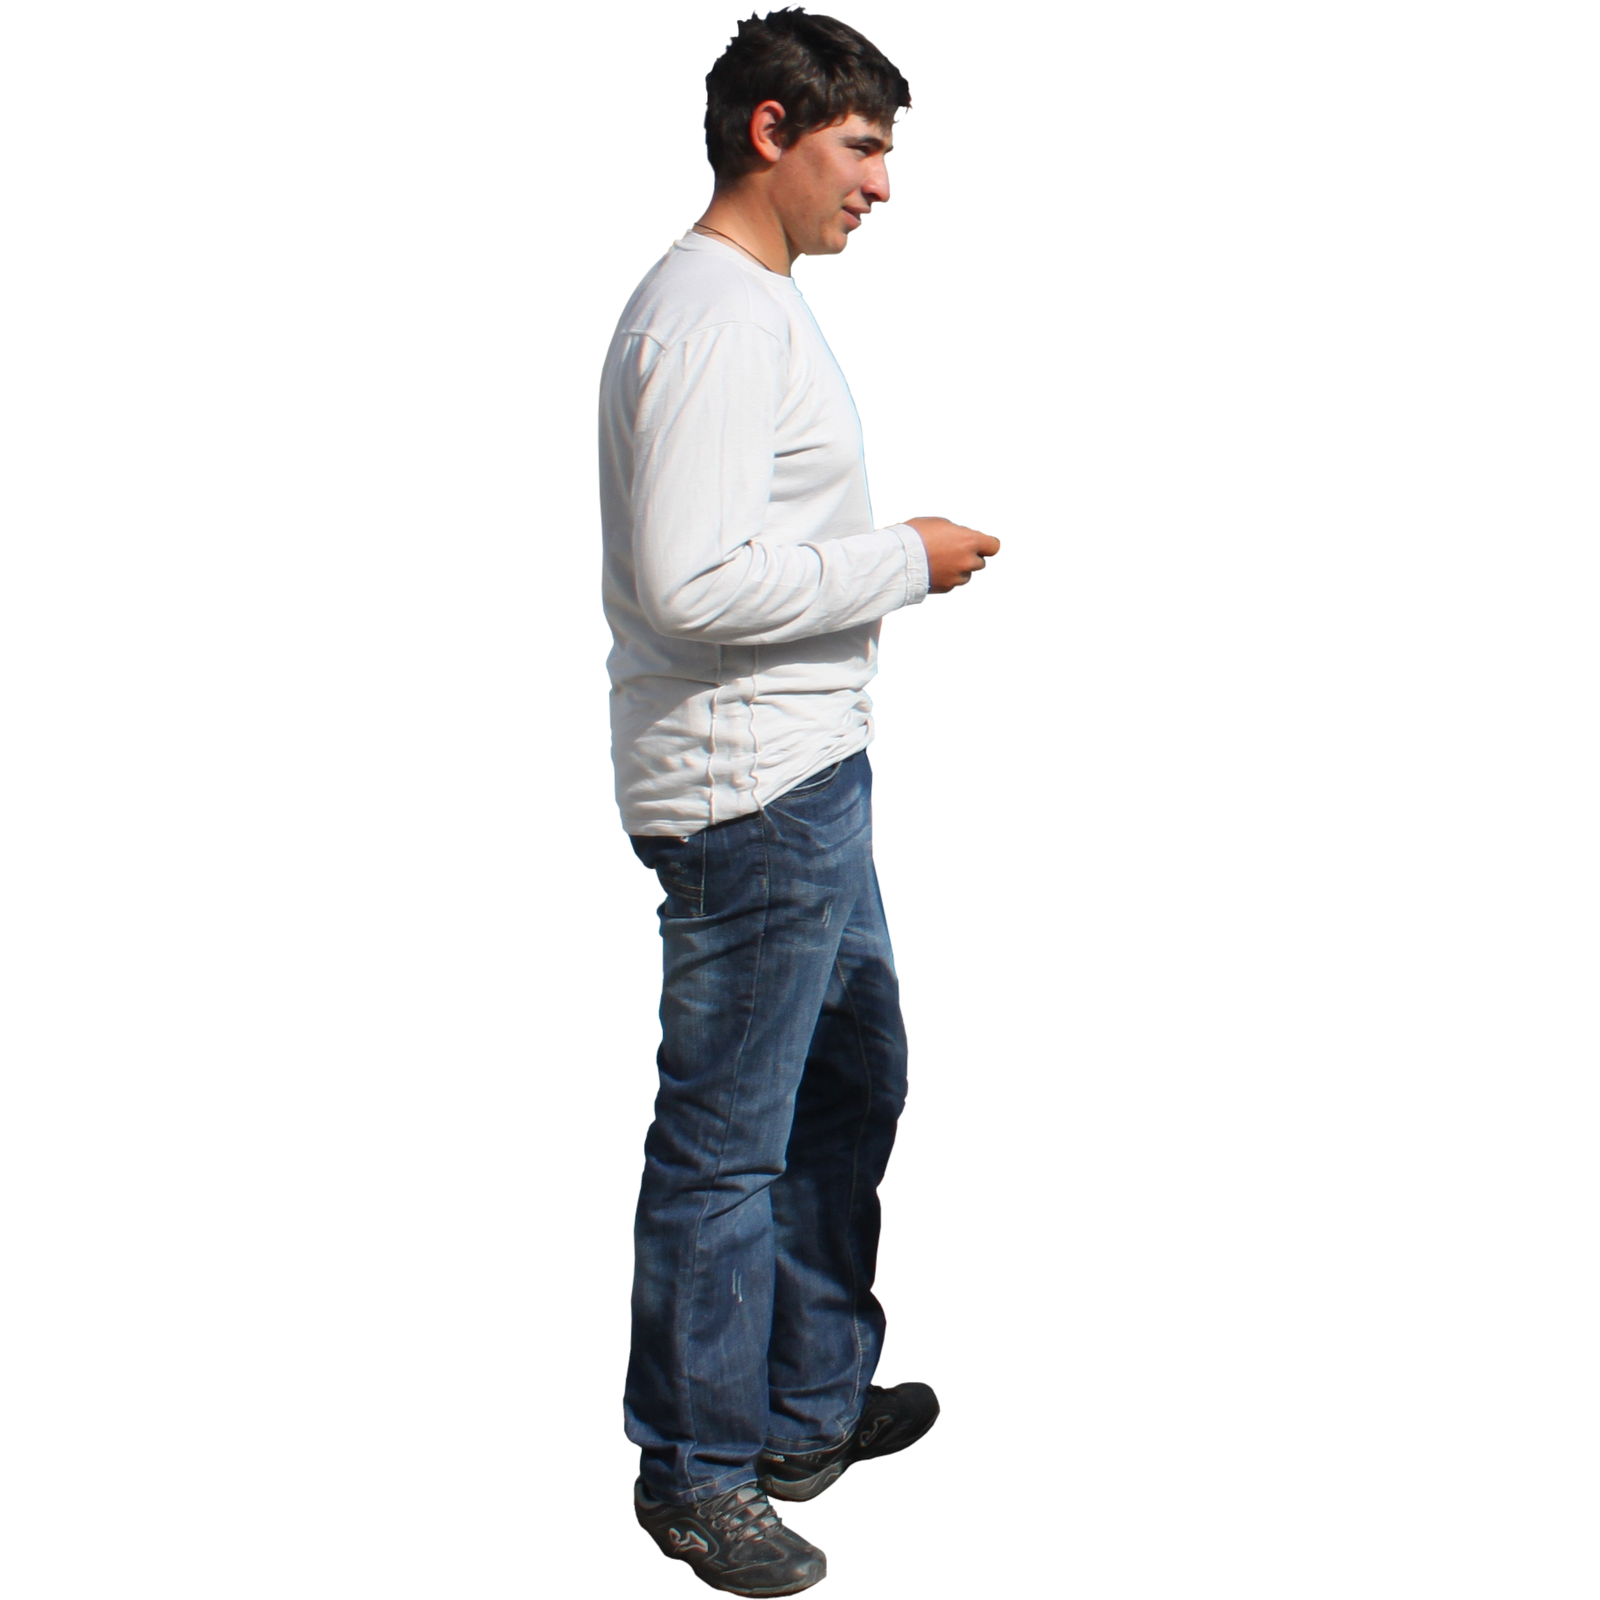 Man Standing Png (101+ images in Collection) Page 1.